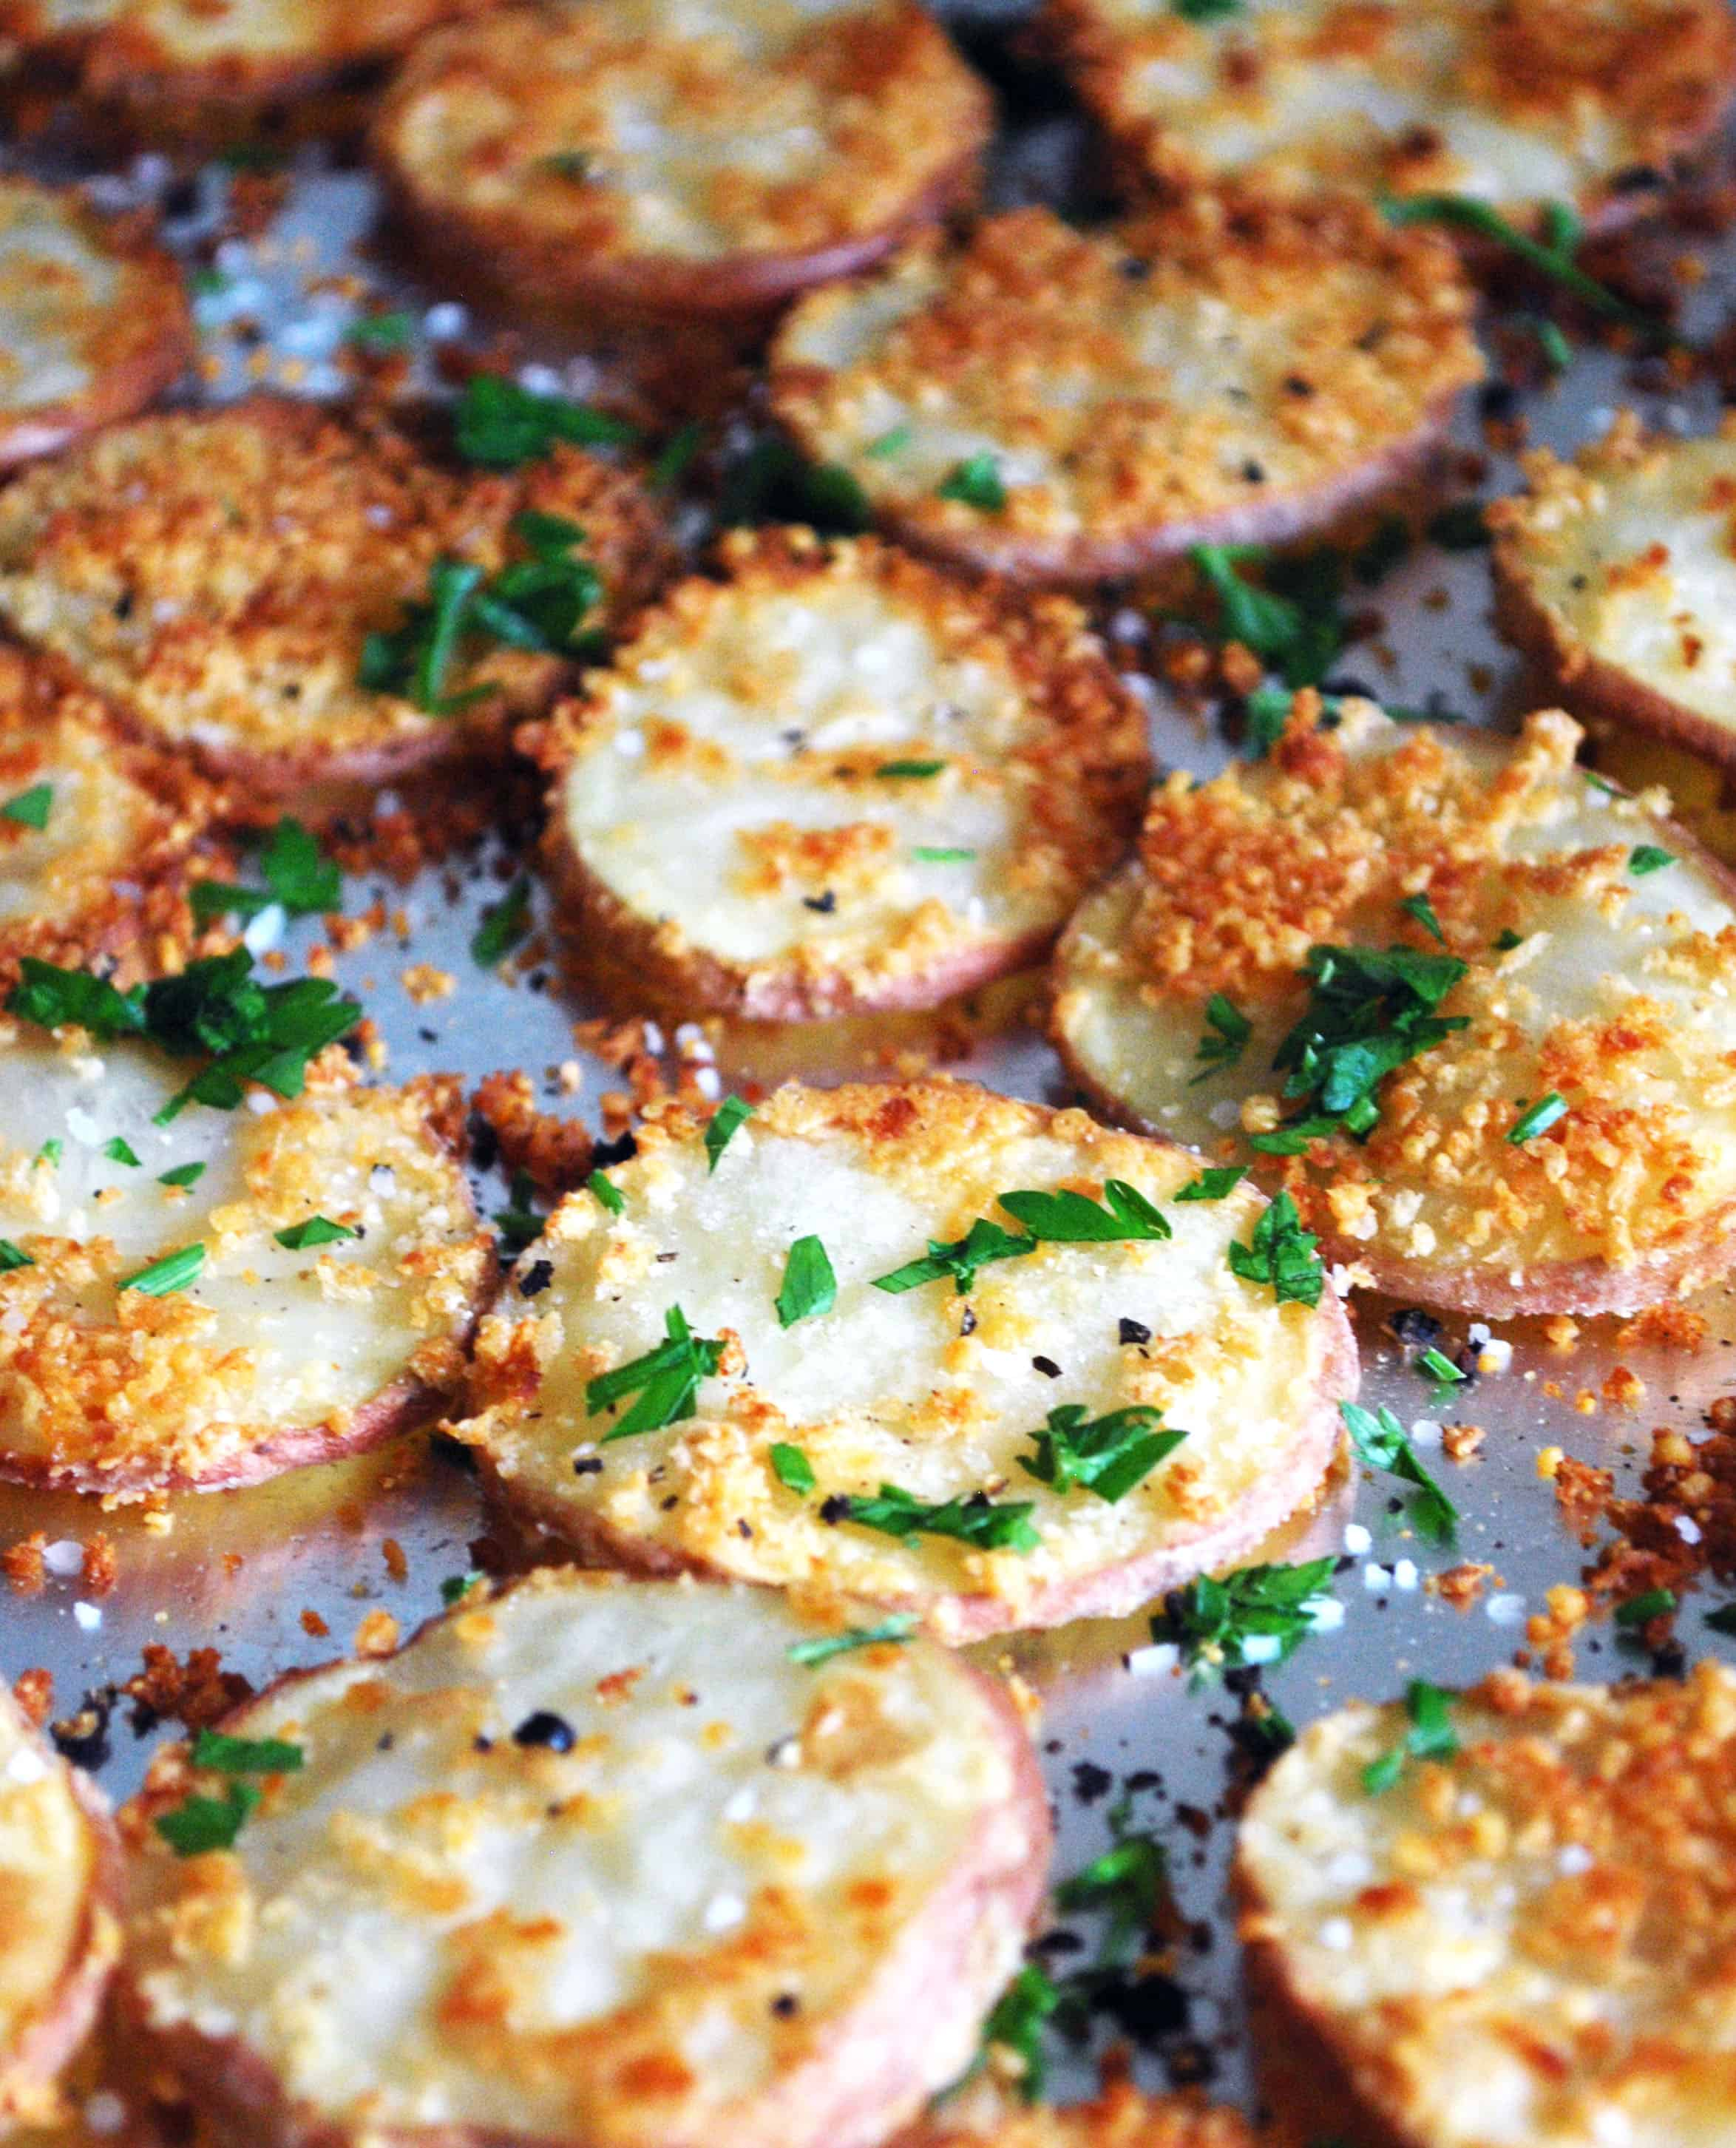 Parmesan Potato Rounds - Full recipe at theliveinkitchen.com